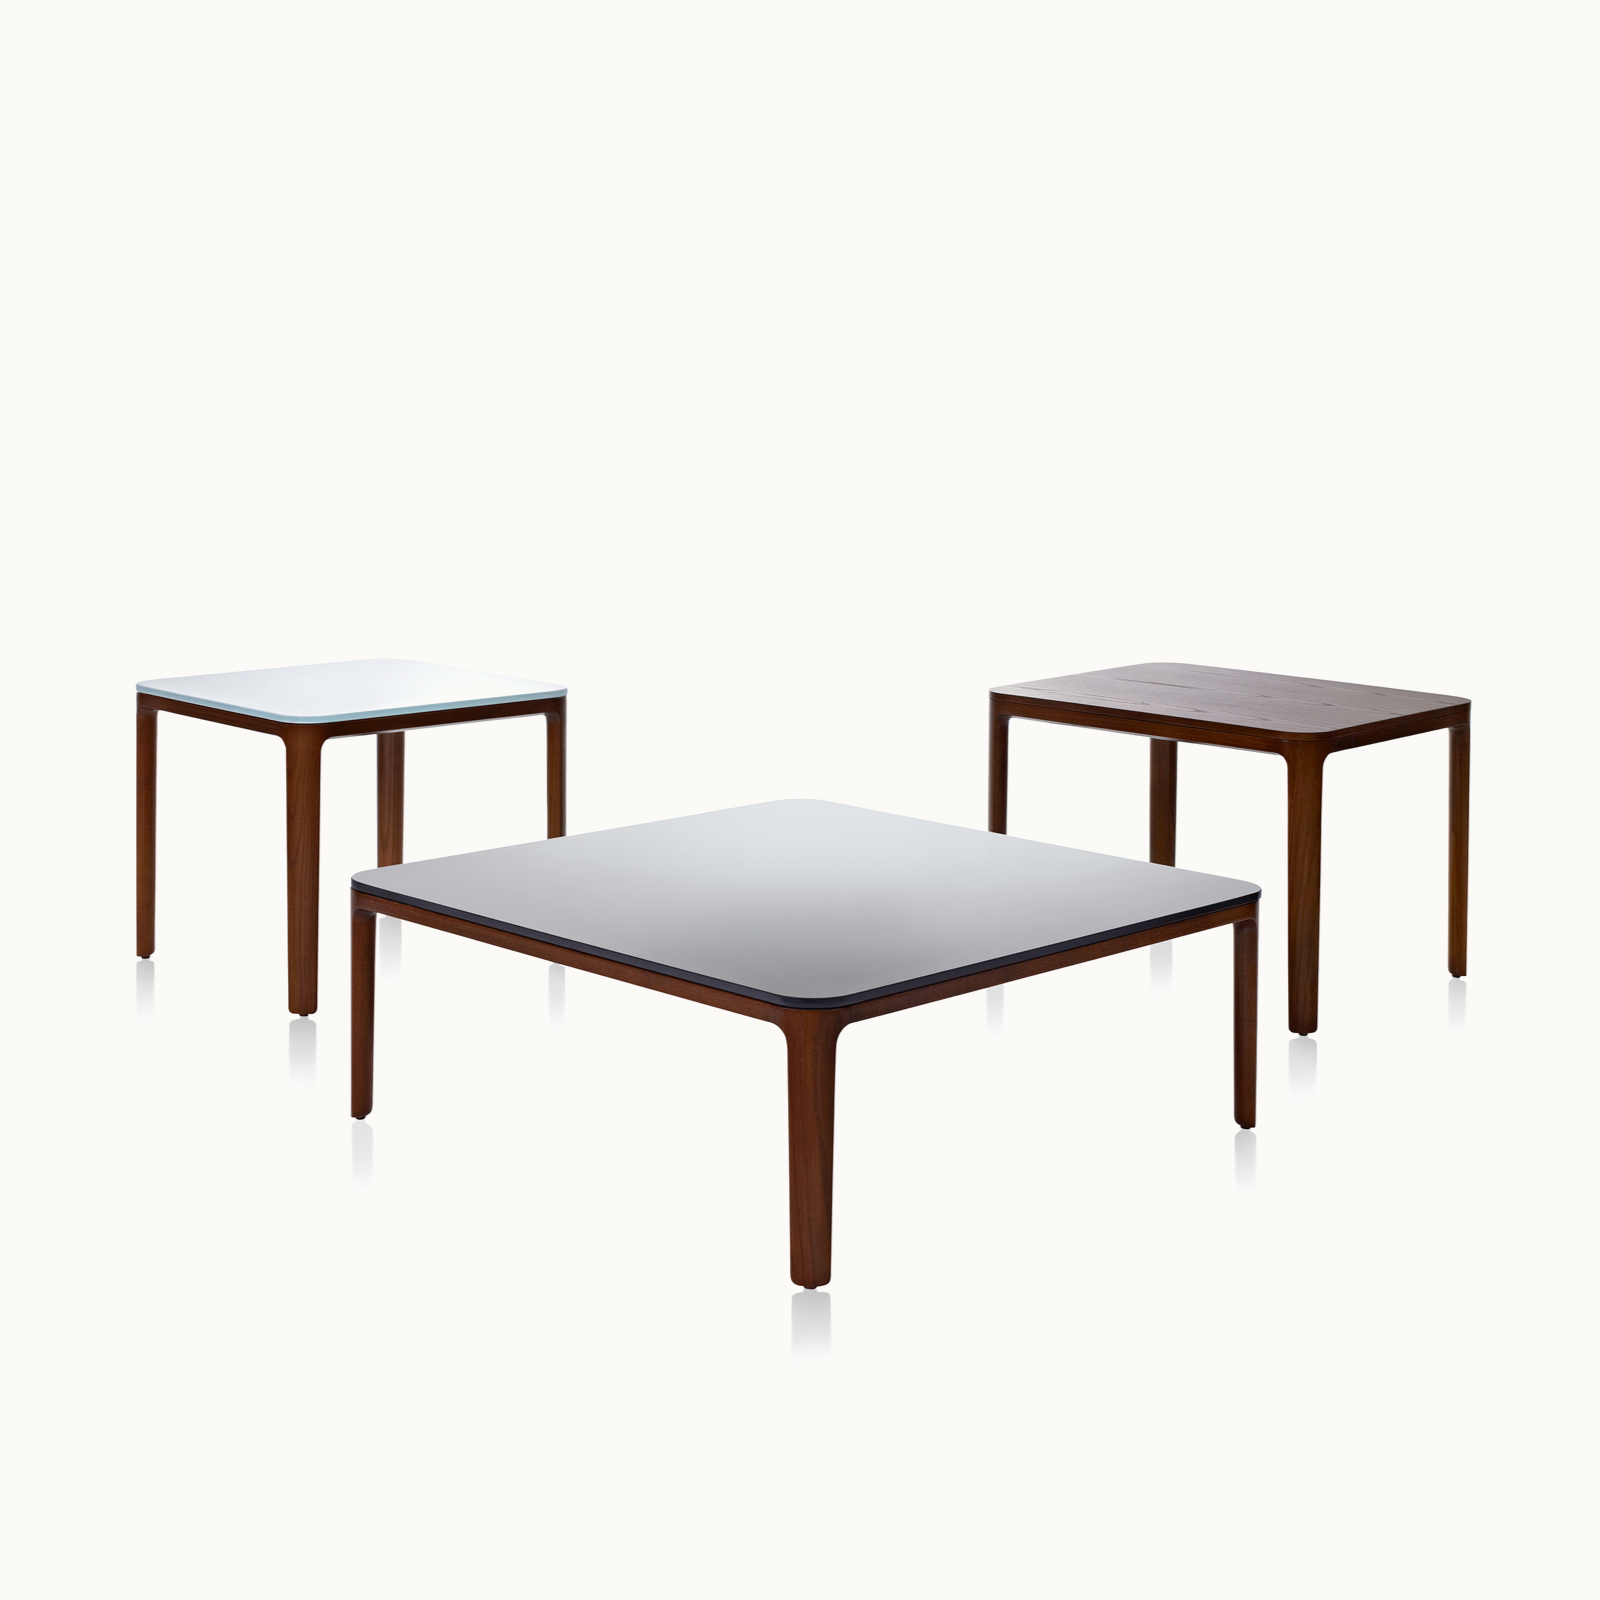 Three A Line occasional tables, including two square tables with glass tops and one rectangular table with a veneer top, all with solid wood legs.